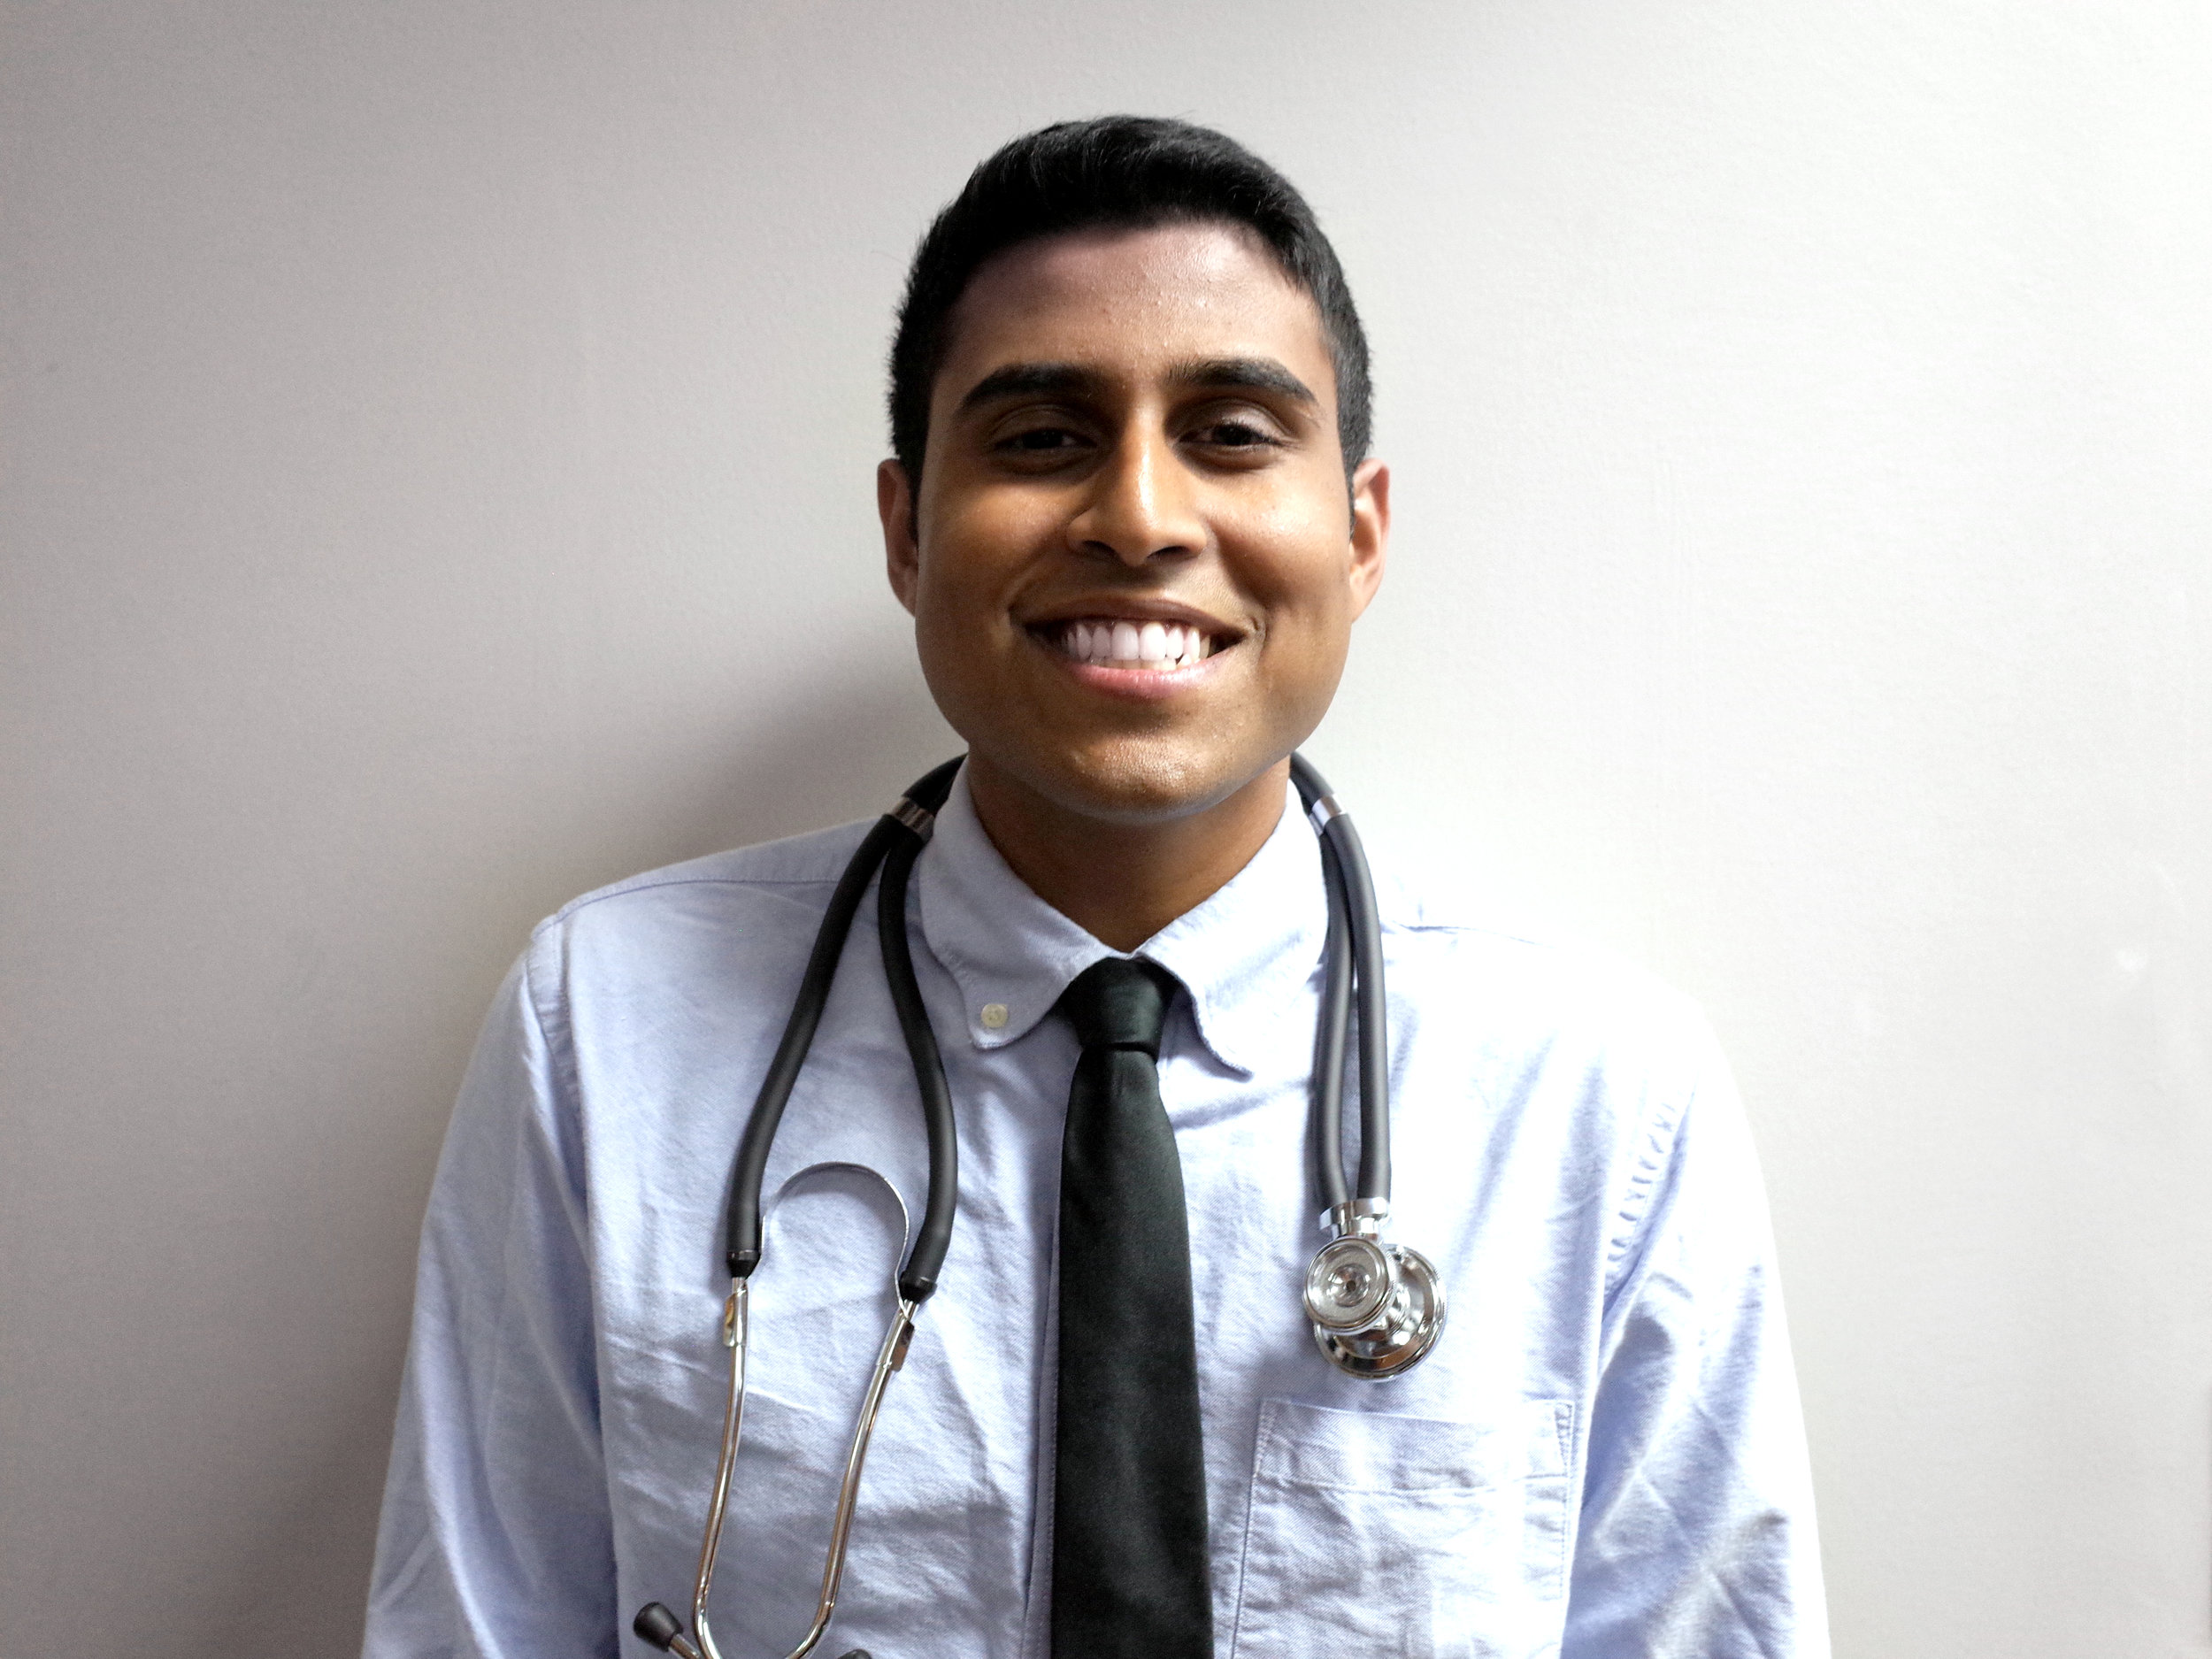 Siddharth Selvakumar   Major: Neurobiology, Physiology, and Behavior Career Goal: Emergency Physician